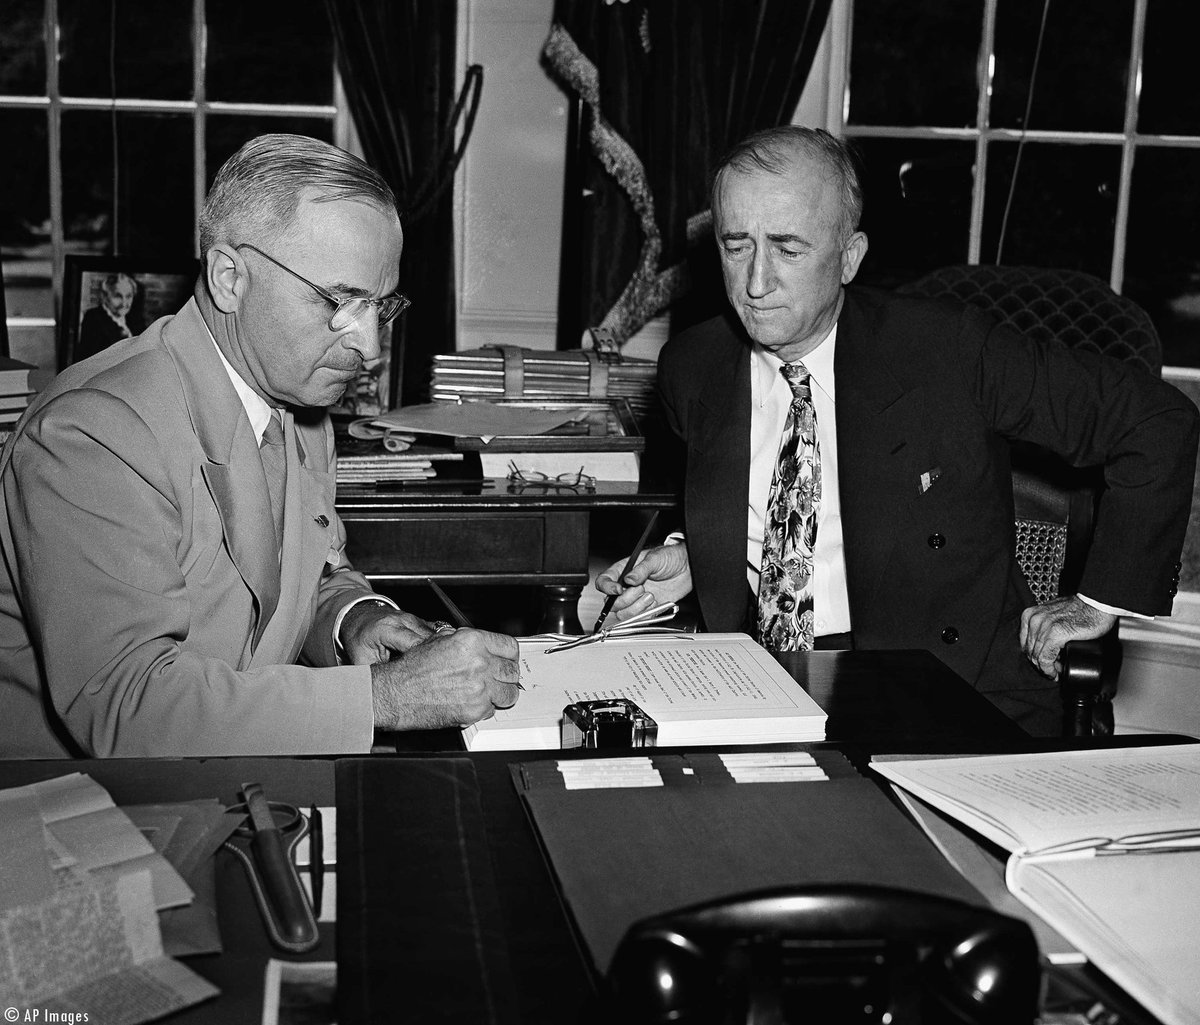 an essay on president harry truman 2016-12-05 harry s truman was born may 8th 1884 in lamar,  harrys trumans fight against communism history essay  president truman asked congress to establish a new foreign aid program to countries threatened by communism.